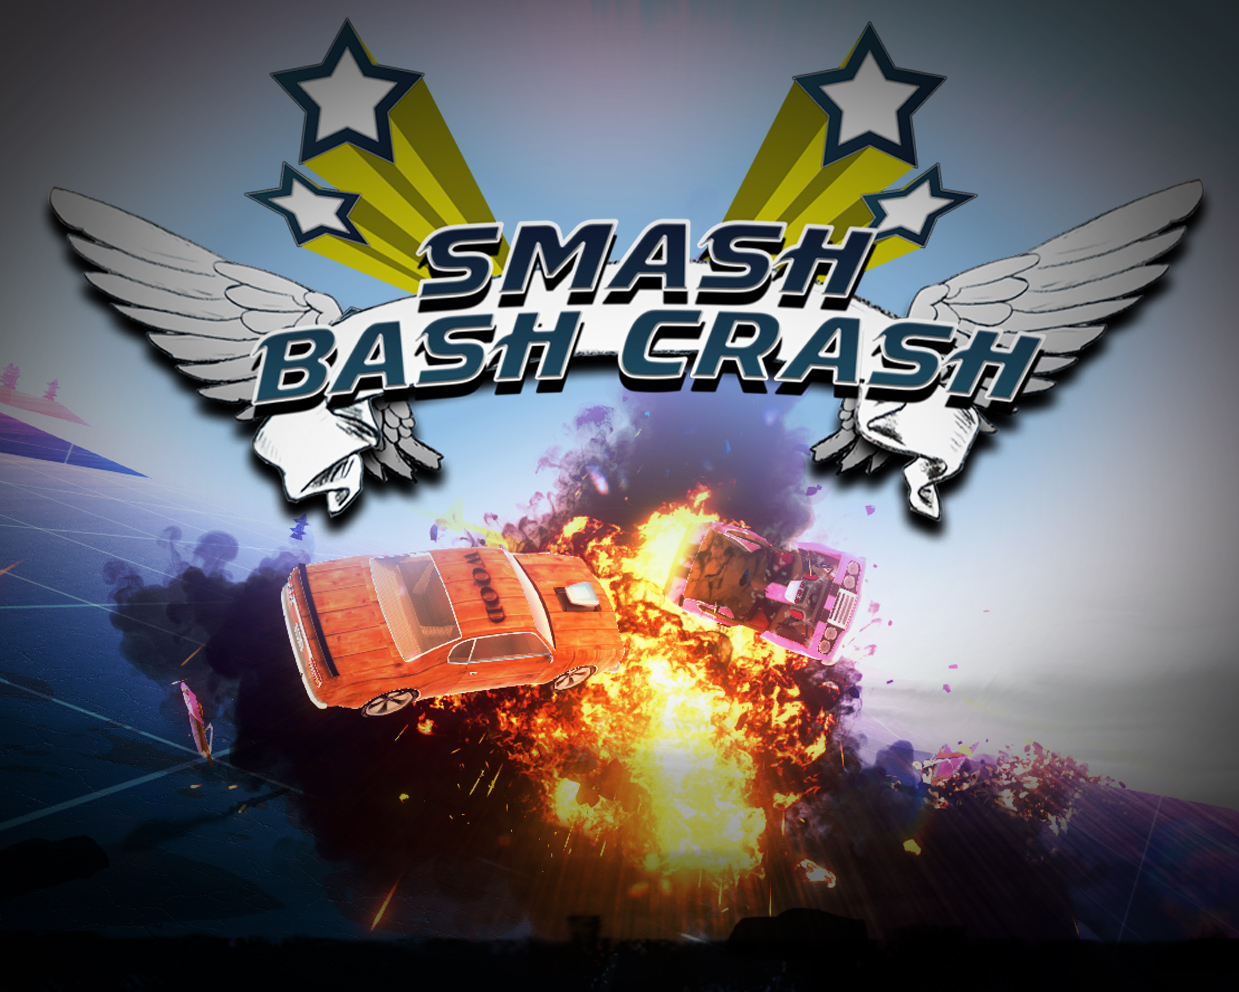 - Smash Bash Crash is a local multiplayer shoot 'em up, smash 'em up game for up to 4 players. Play against your friends, or if you prefer against AI opponents.